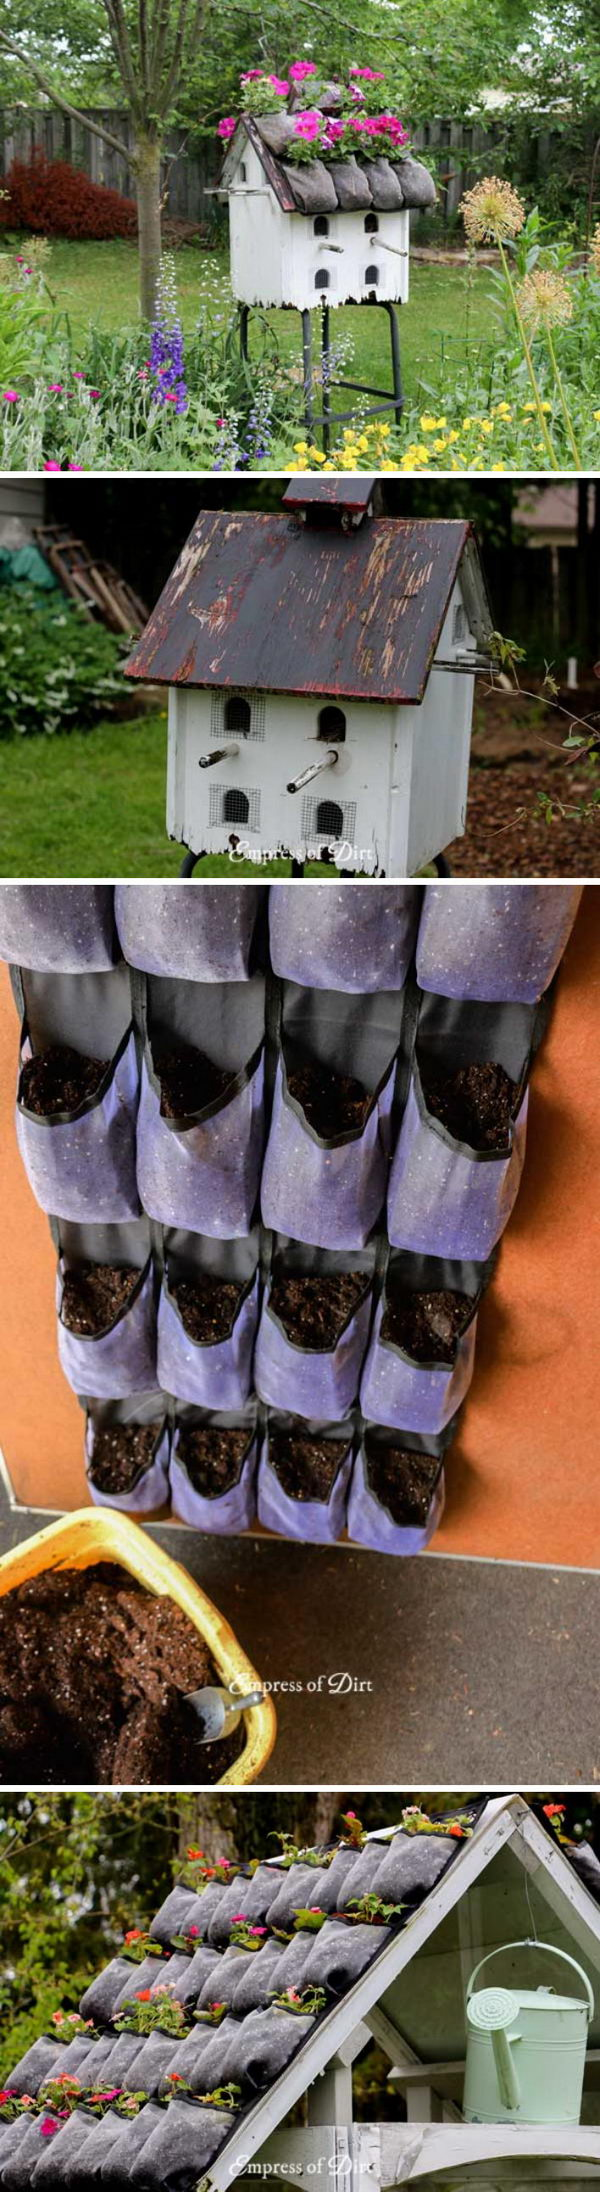 Add a Flower-Top Roof to Mini Greenhouse.